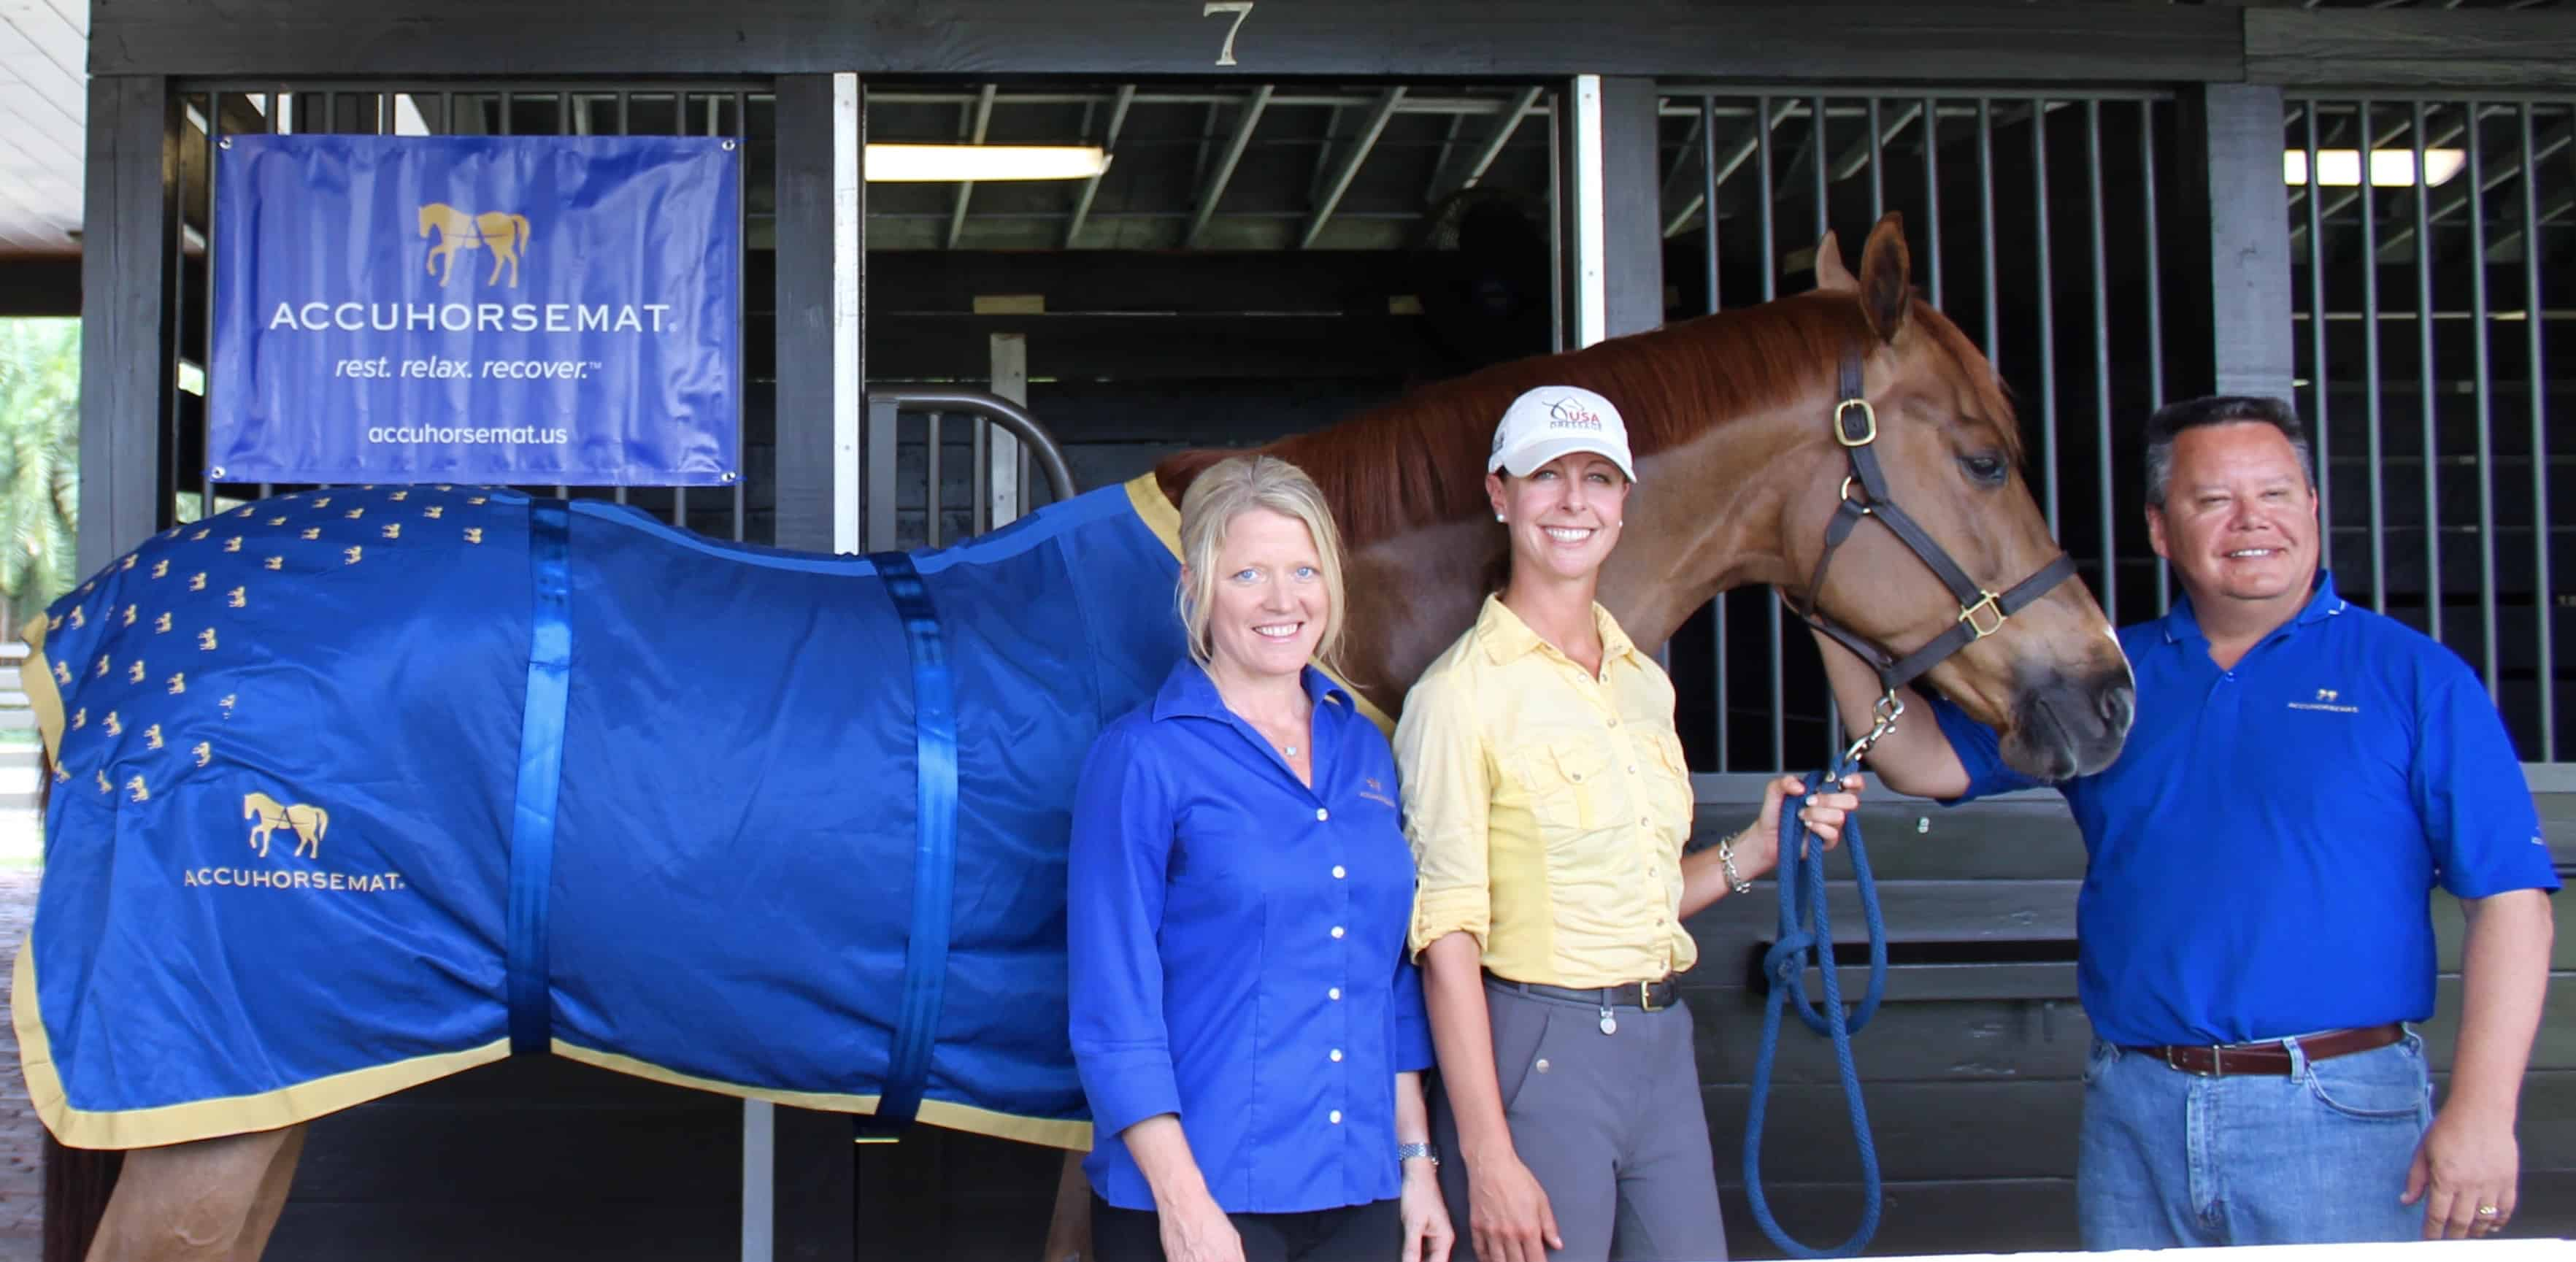 New Product From Sweden: Accuhorsemat Offers Innovative Equine Acupressure